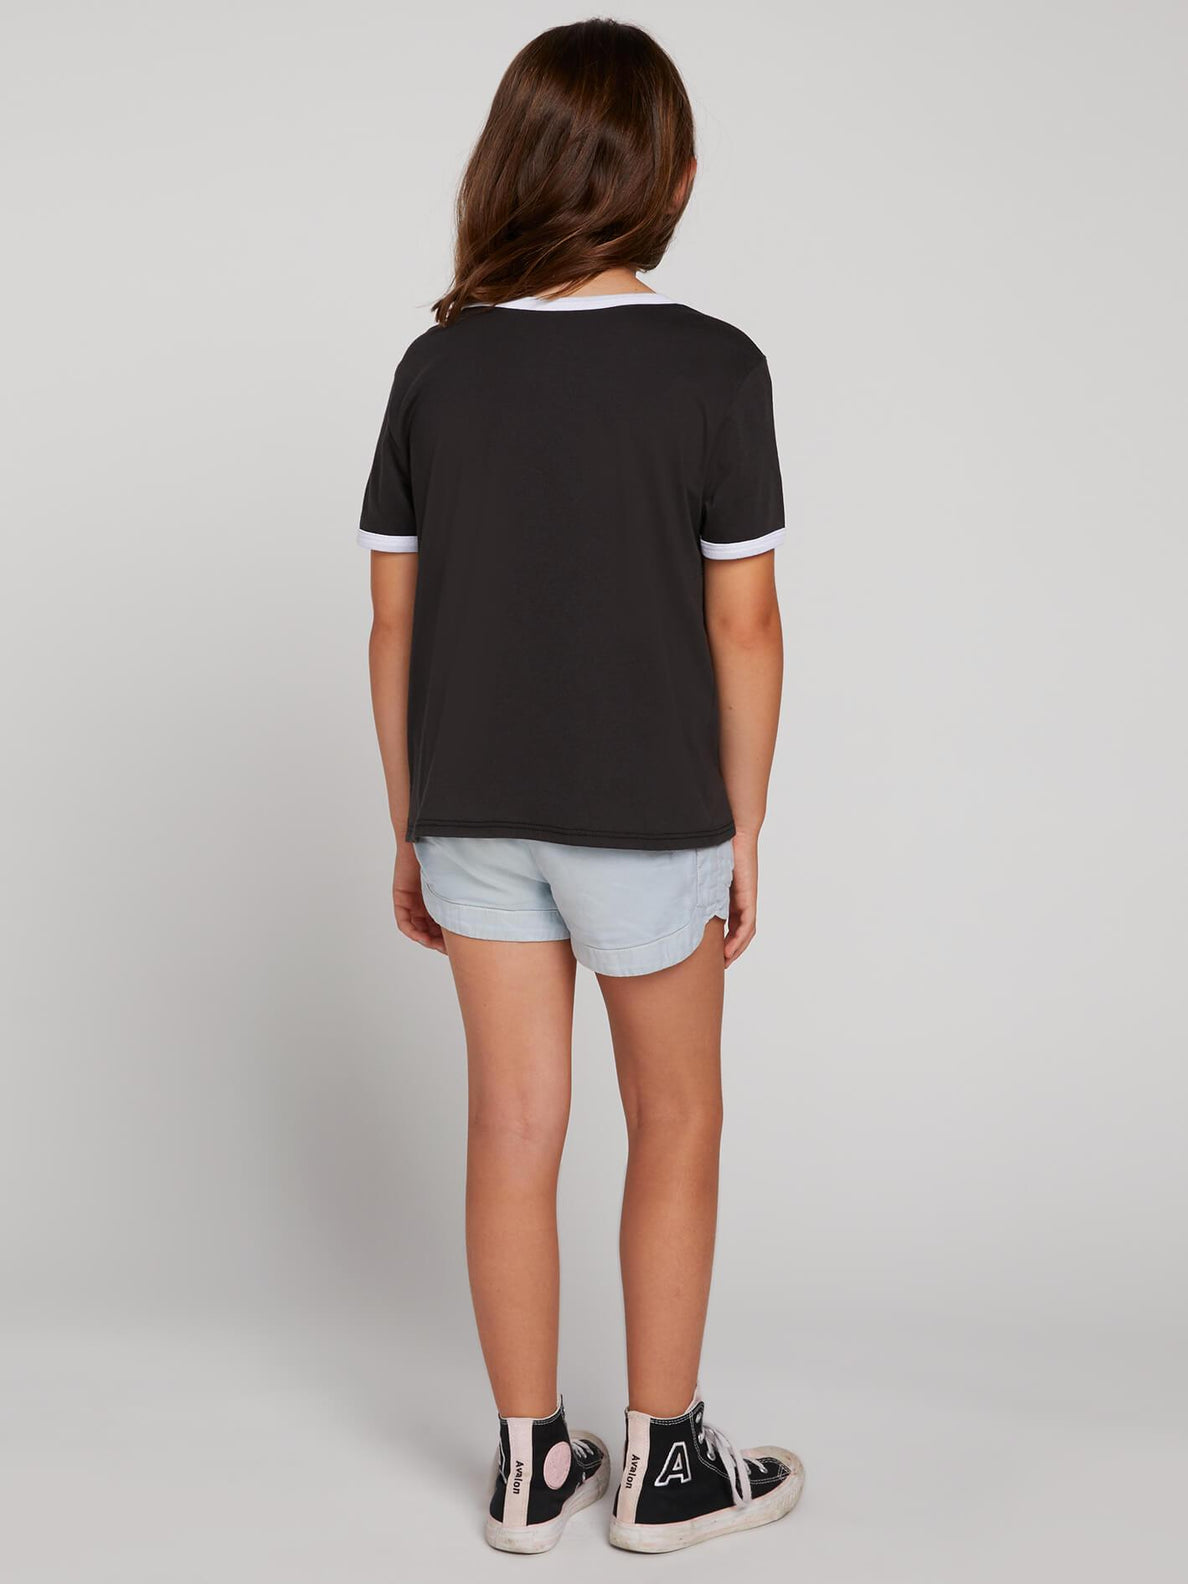 Big Girls Hey Slims Tee In Black, Back View